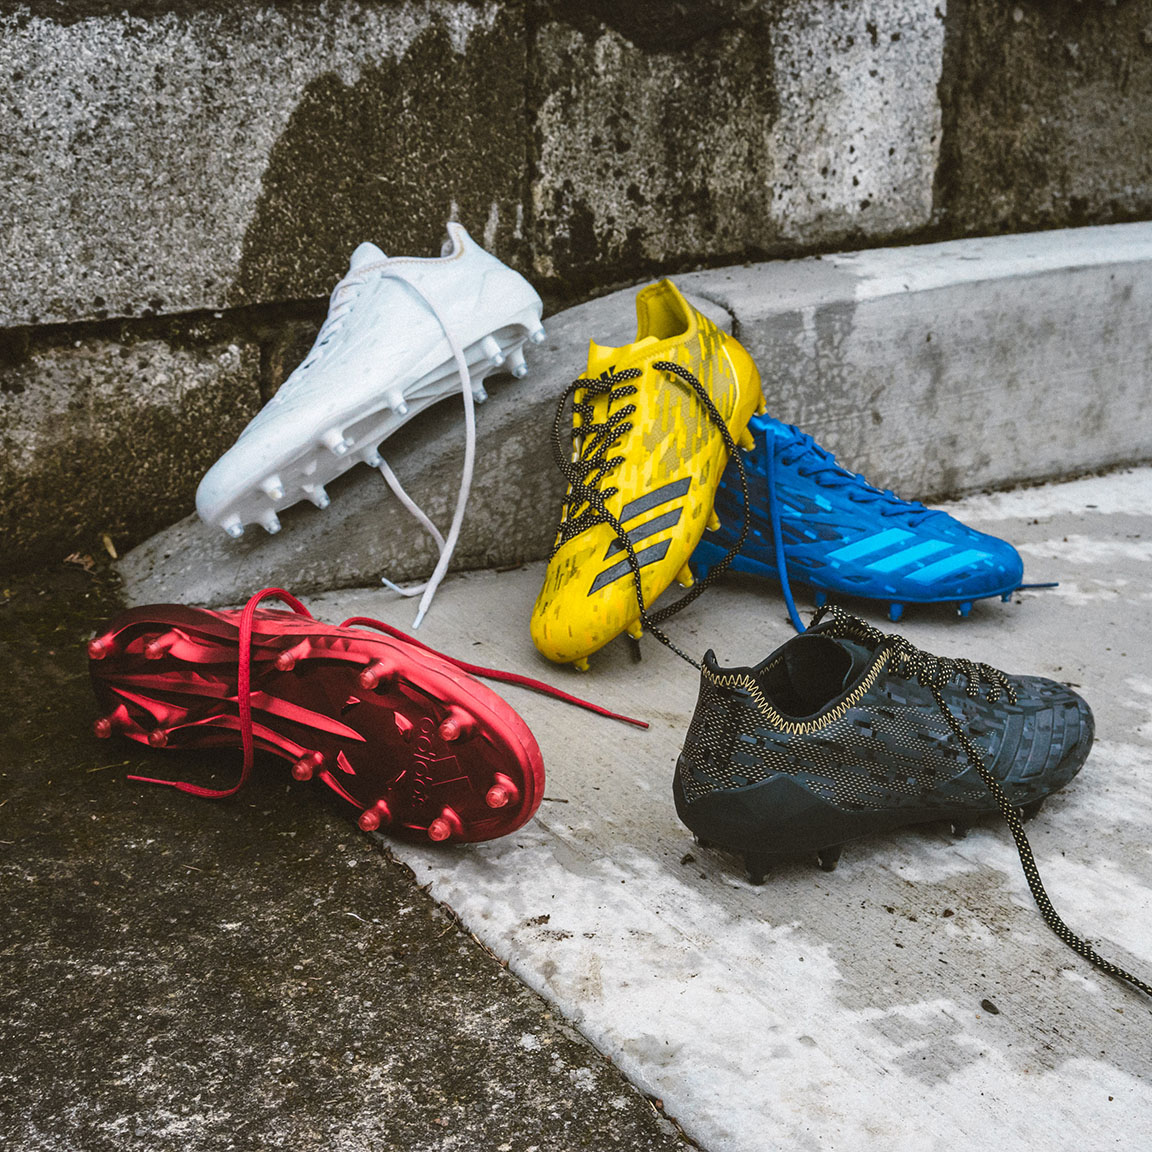 fe411a7b7b9a adidas Unveils  Dipped  Football Cleat Collection - WearTesters